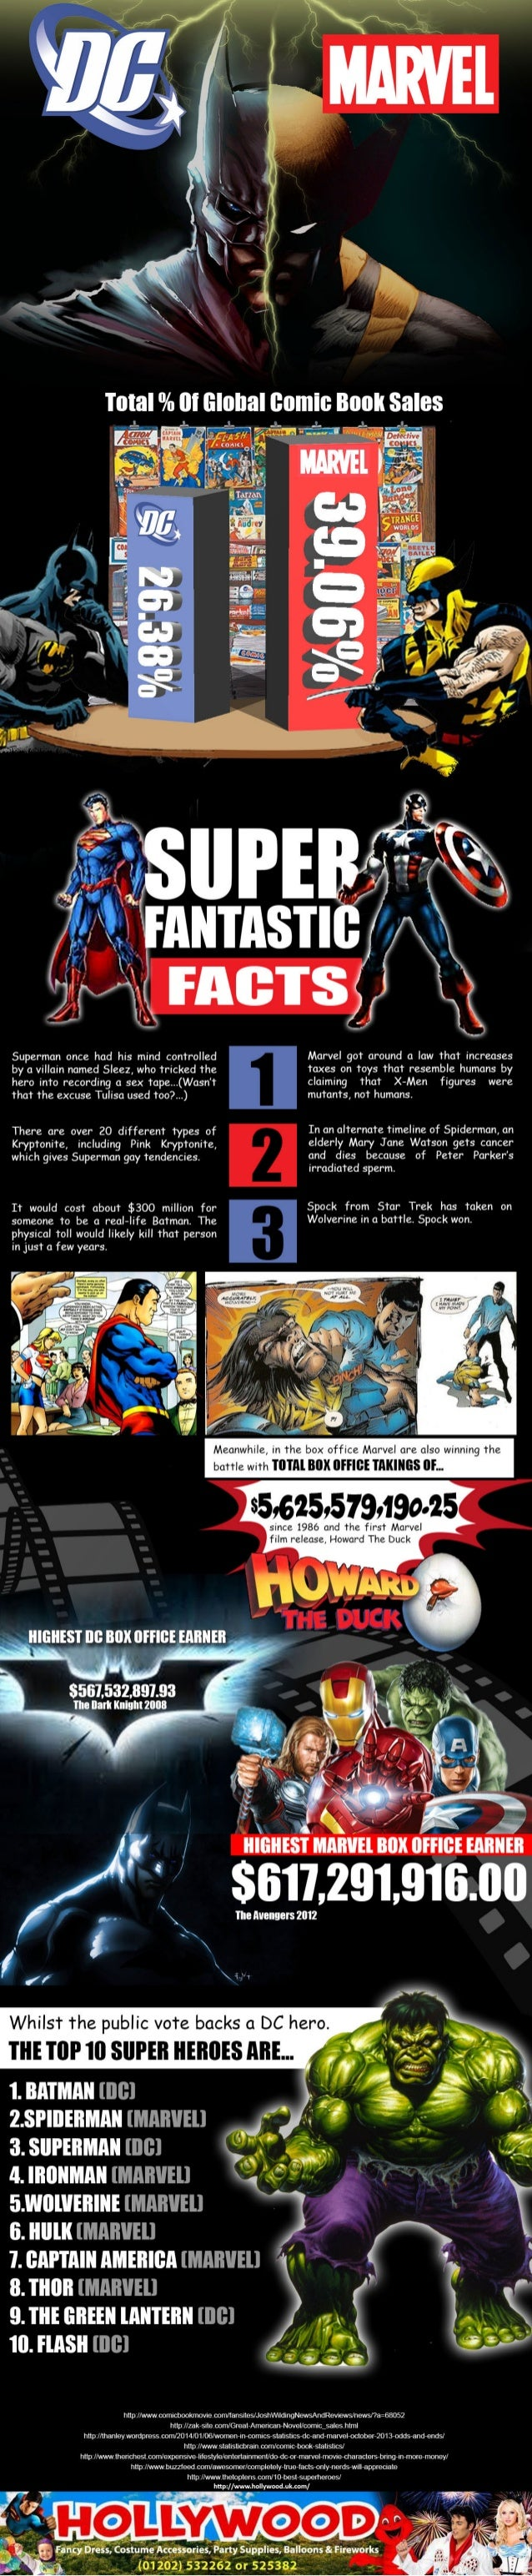 Superheroes DC vs Marvel, Which Side are You?